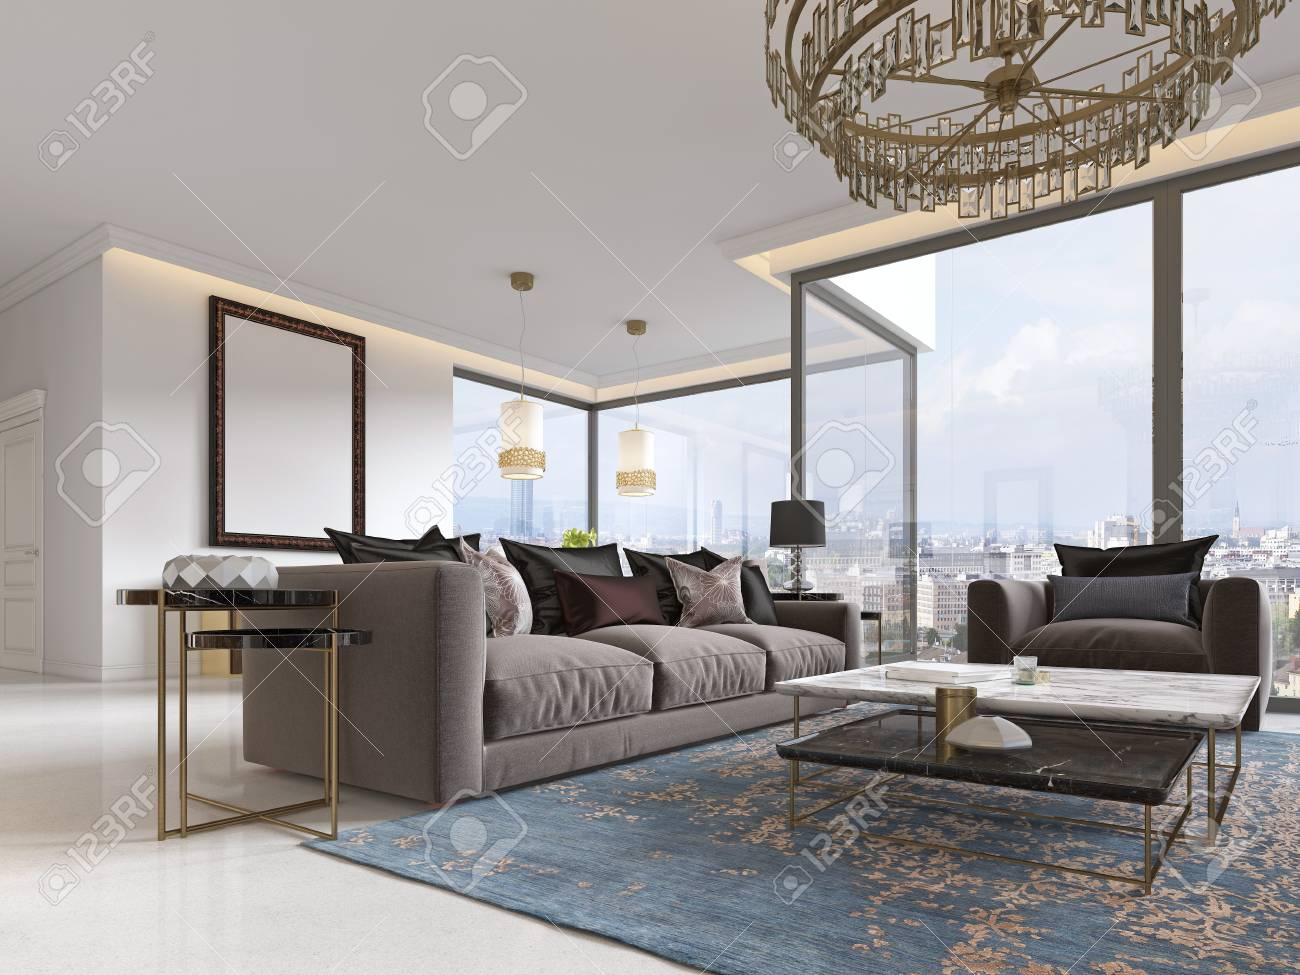 Modern Luxury Living Room.Modern Luxury Living Room Interior With A Sofa Armchairs A